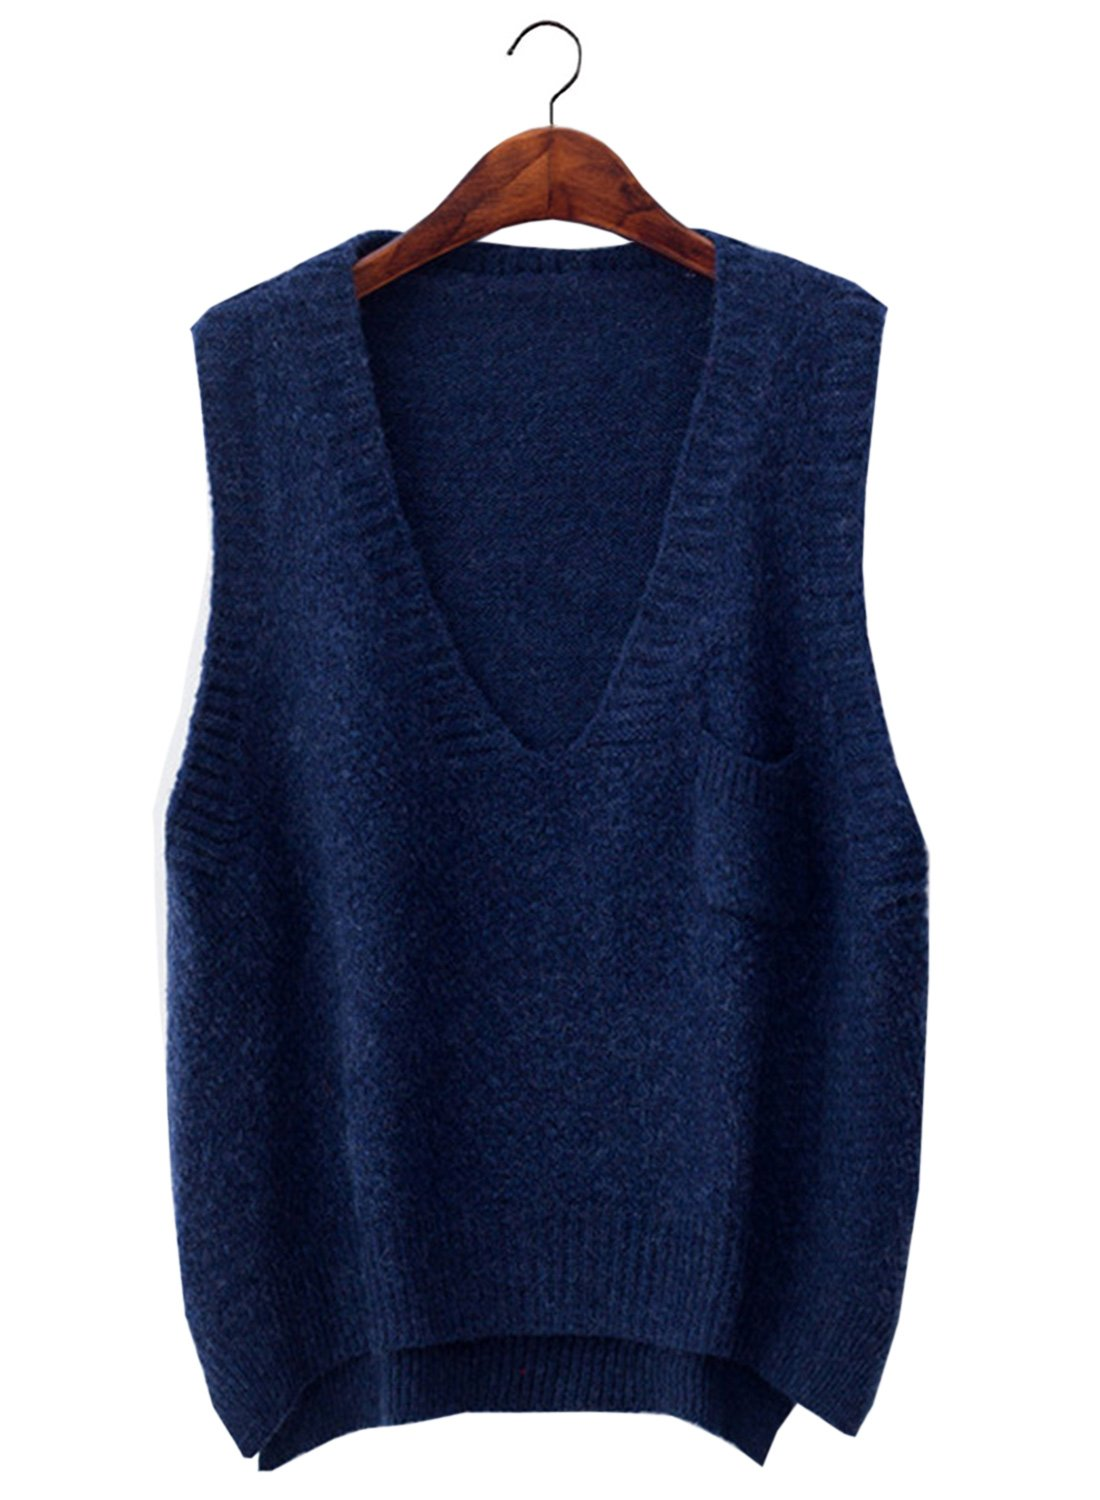 Futurino Women's Boxy Solid Color Low V Neck Marled Knitted Sweater Vest Tops